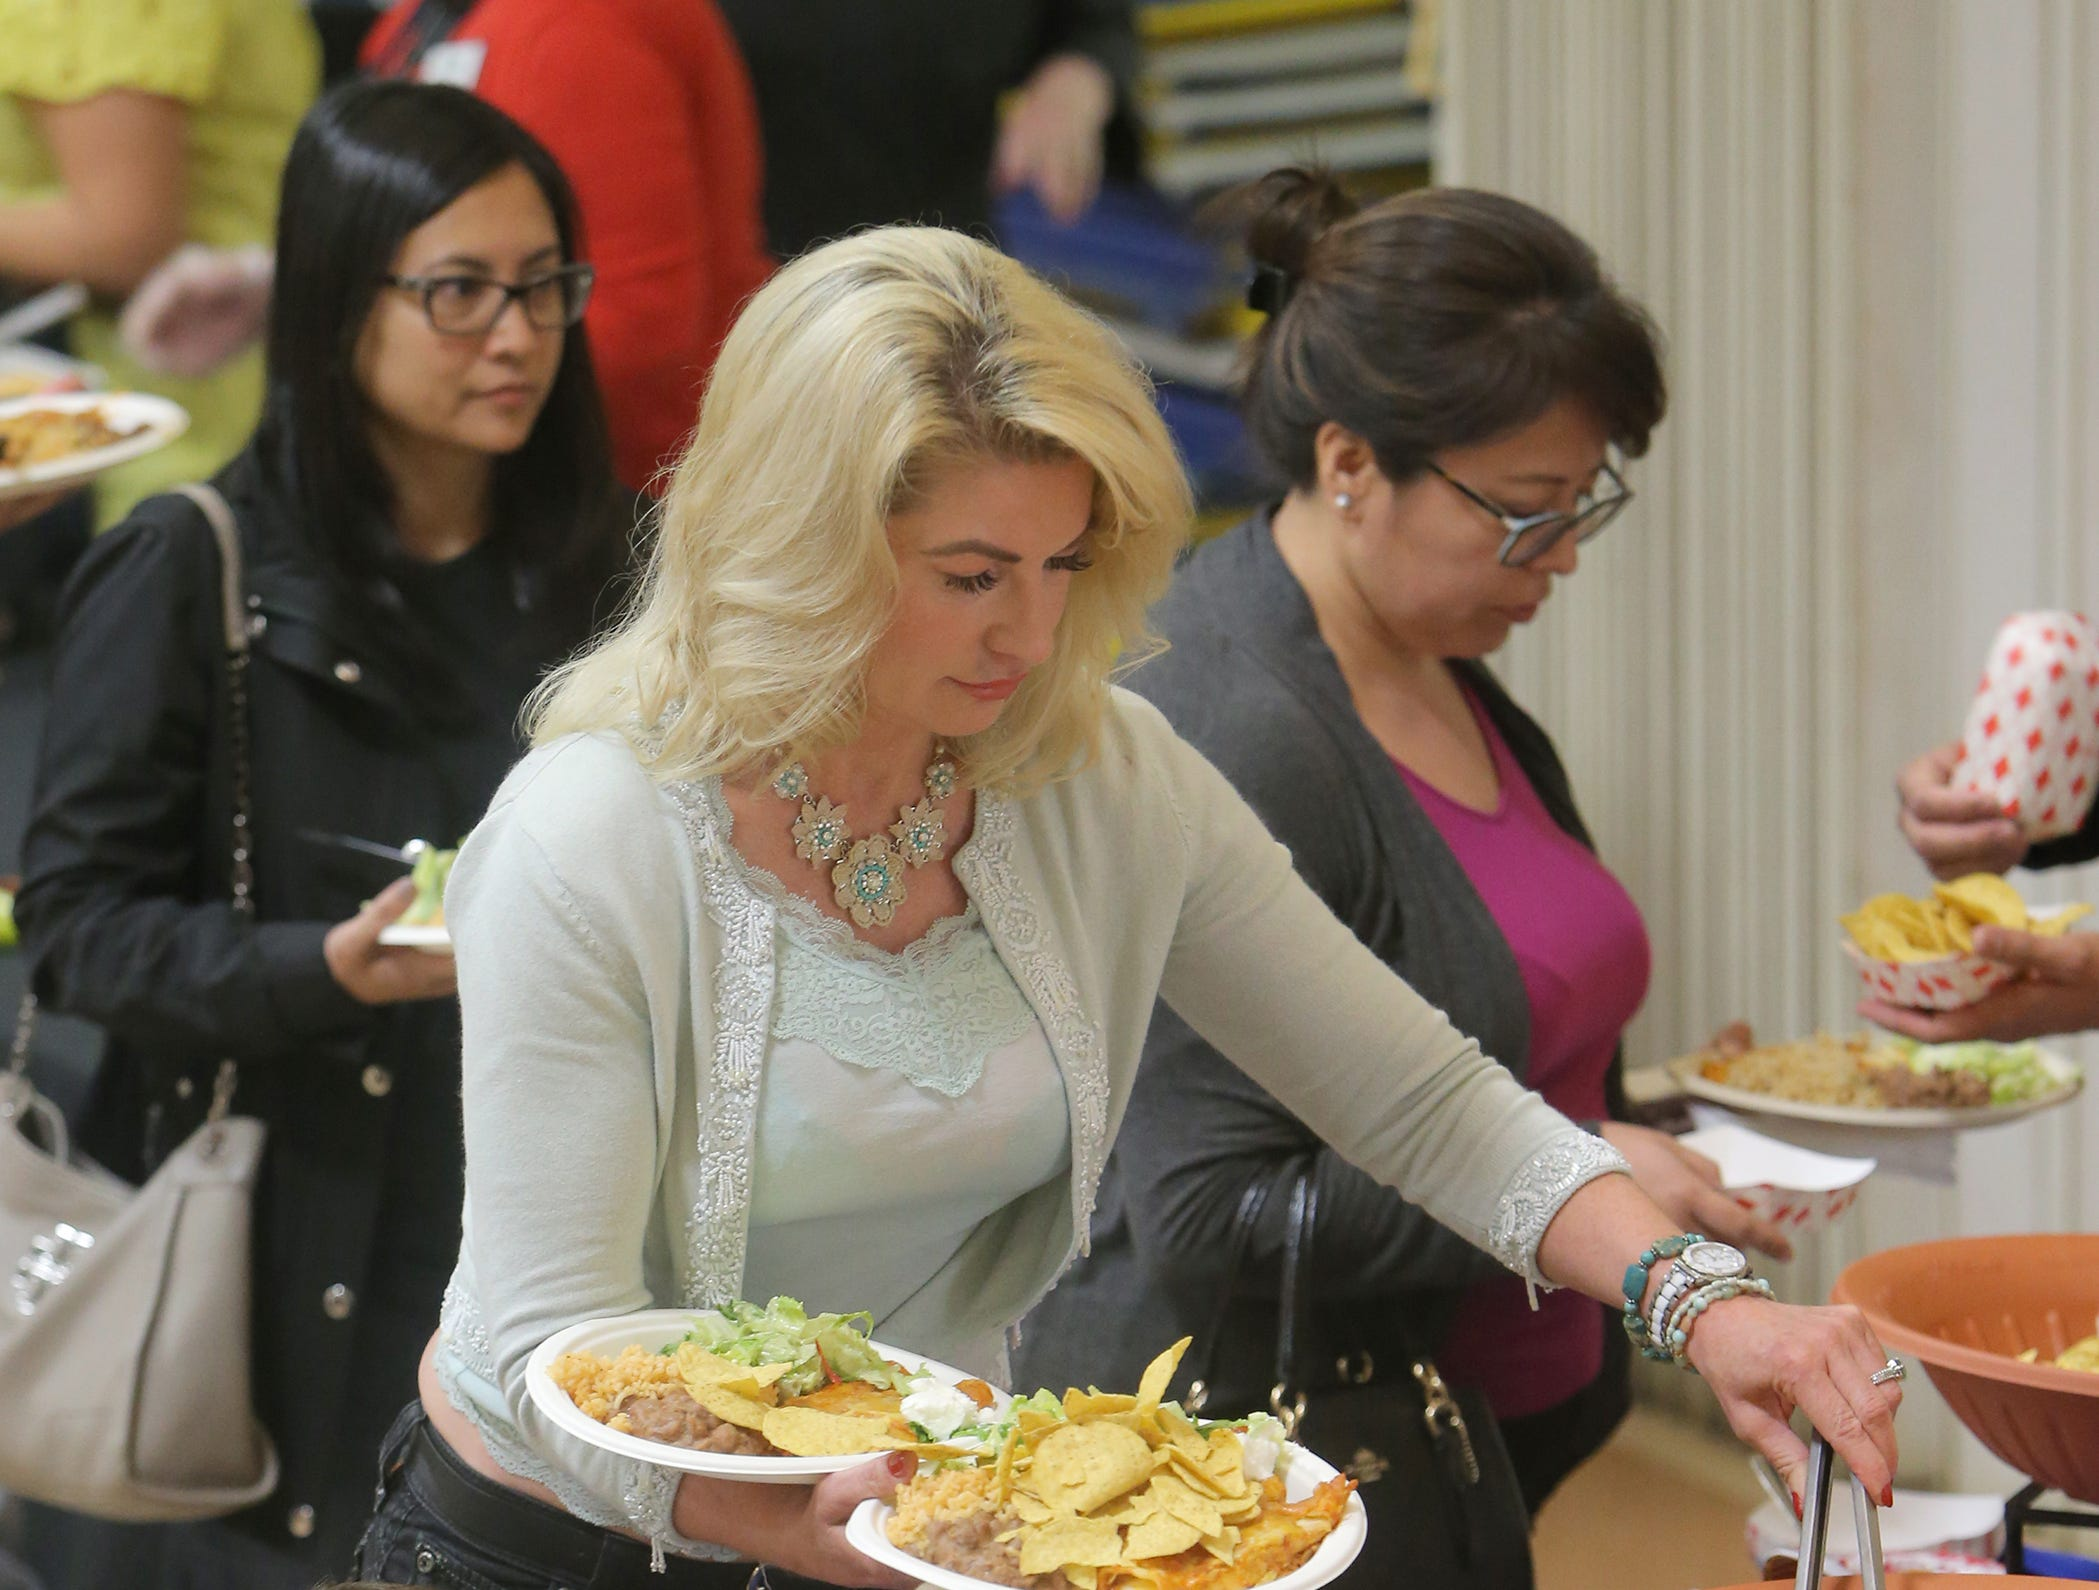 Adam Jones watches as his grand-aunt Christine Popok, a Rotary Club of Camarillo member, adds chips to their enchiladas dinner during the annual Viva la Comida Dinner and Fiesta fundraiser on Monday at the Camarillo Community Center.